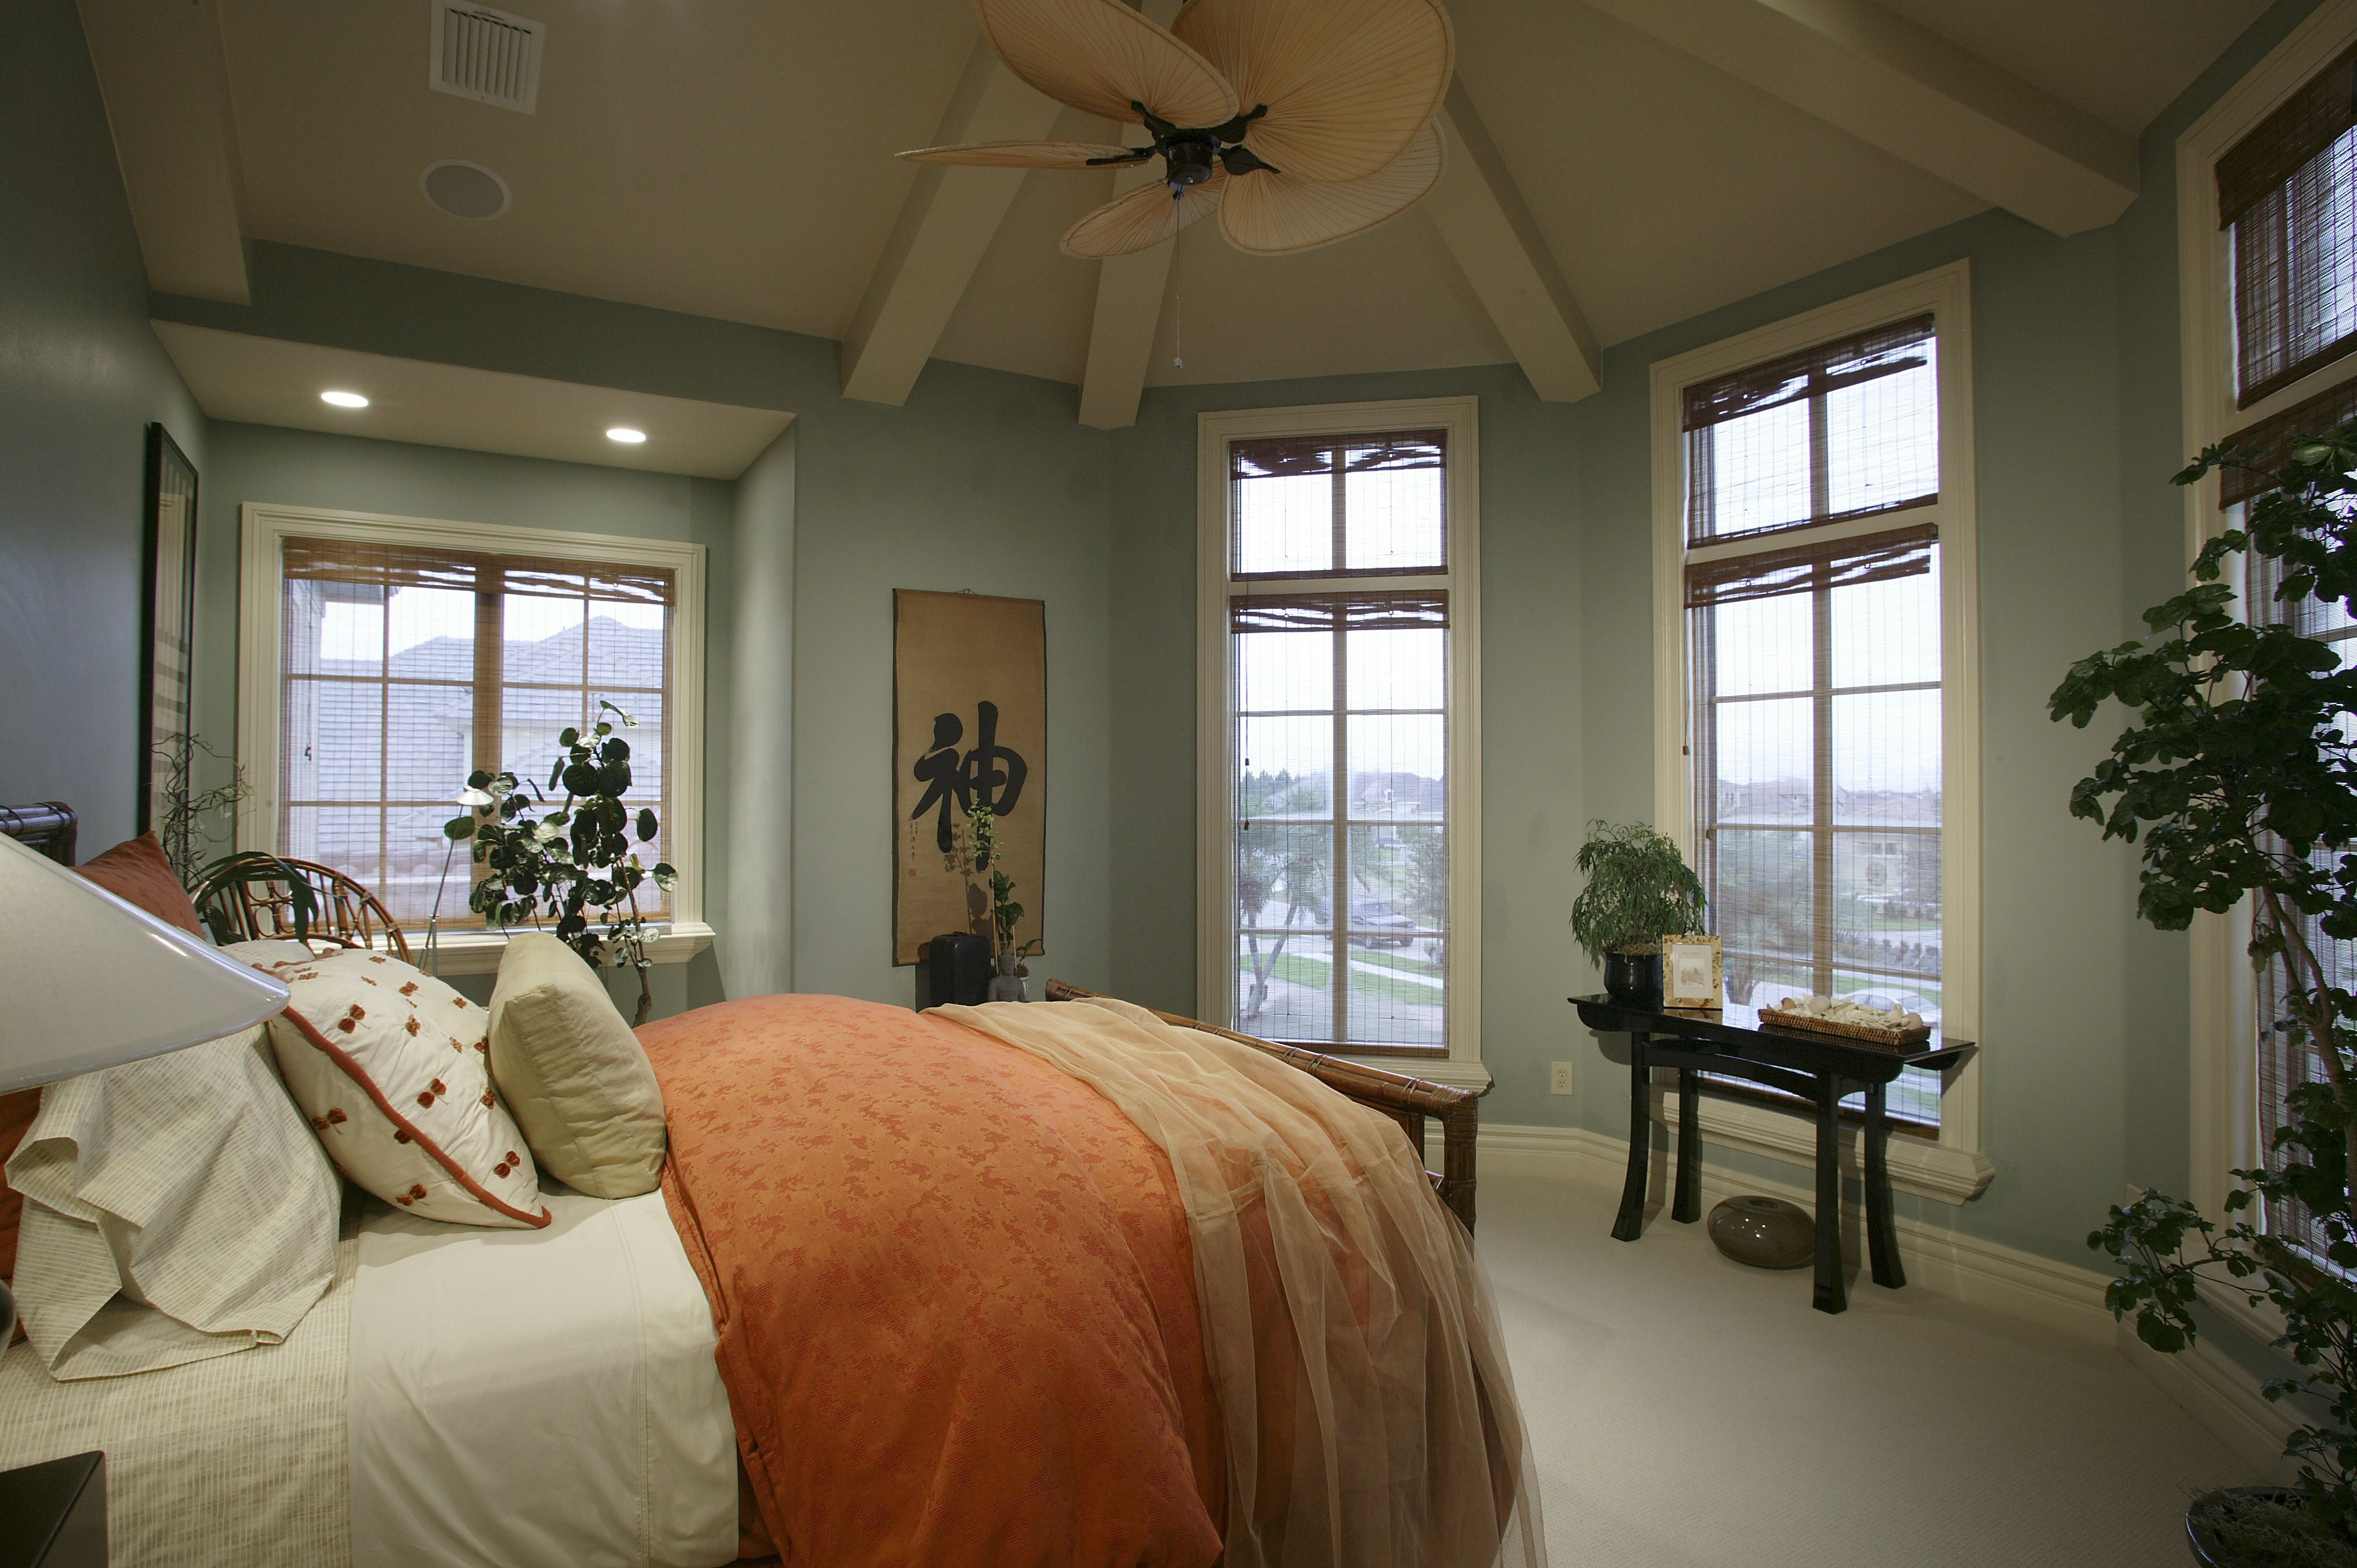 We love all the windows in this room! A great way to soak